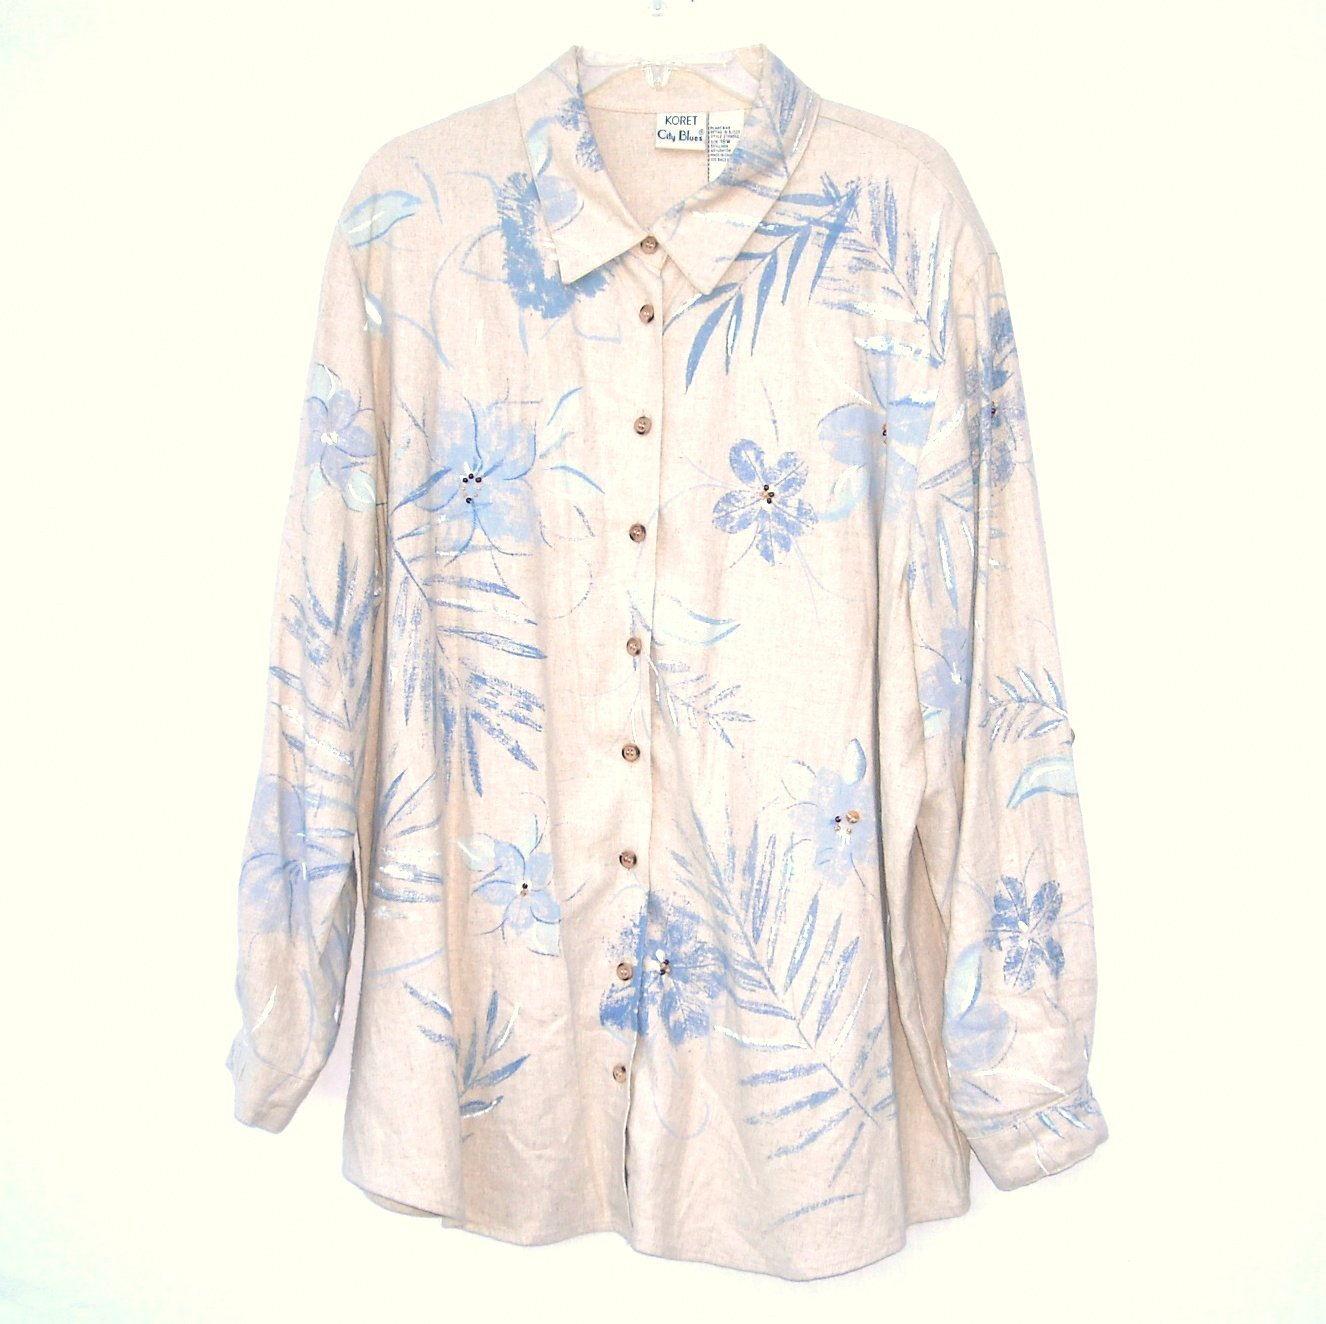 Koret City Blues Womens Soft Long Blouse Shirt Size 18 W